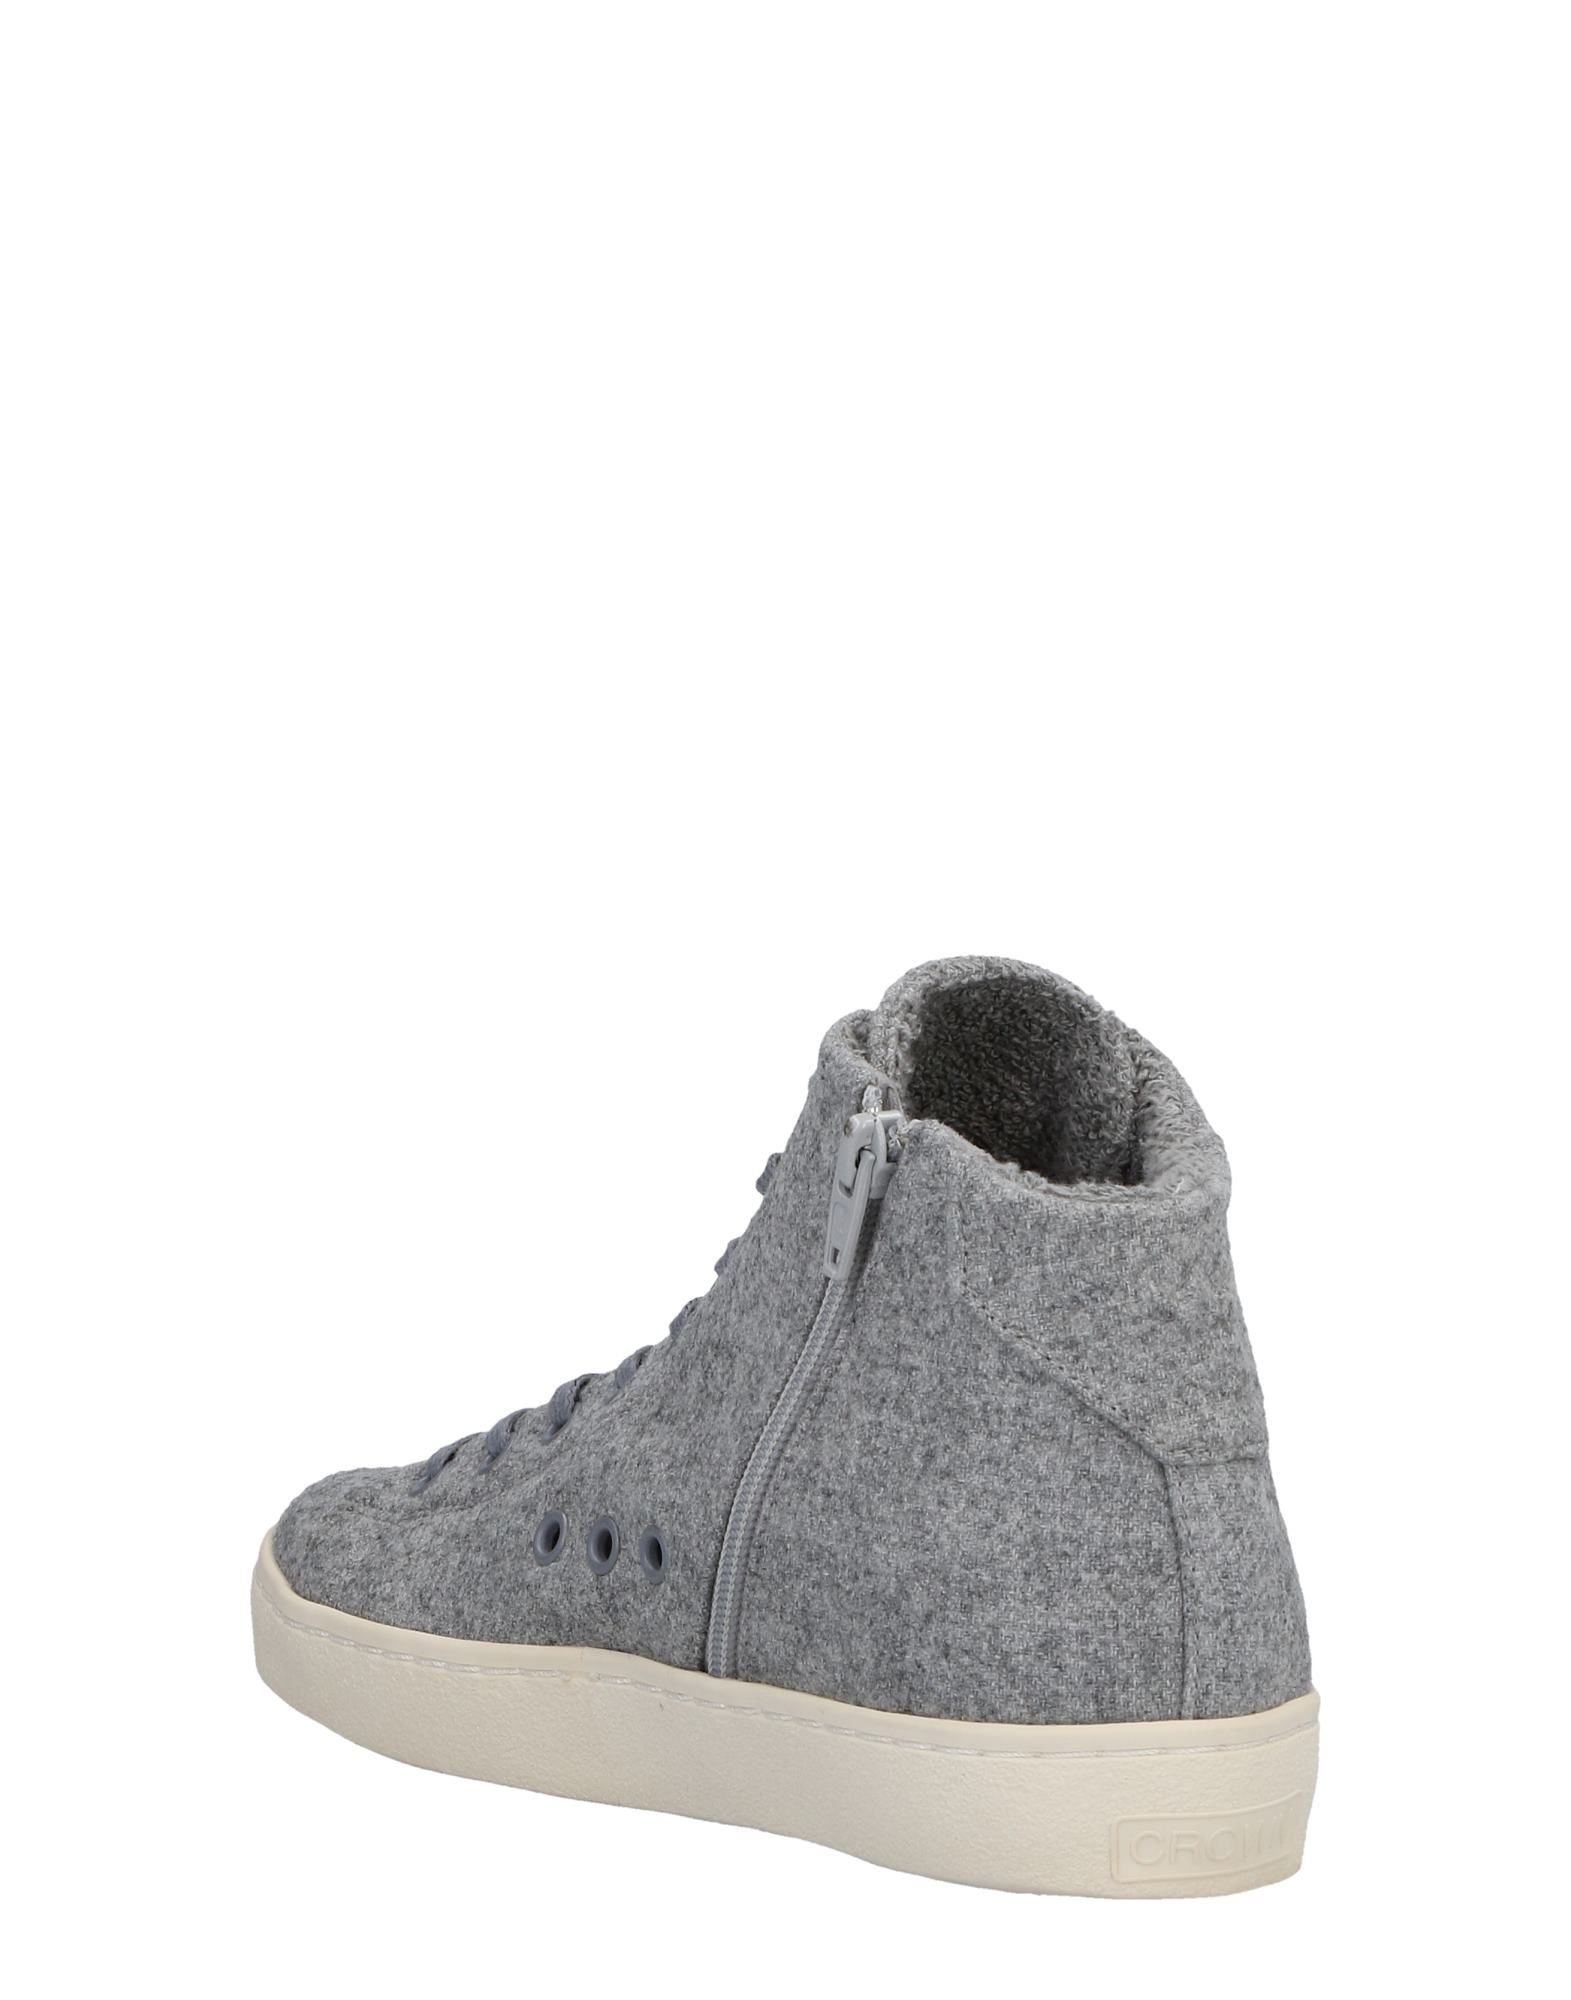 Leather Crown Sneakers - Women Leather Leather Leather Crown Sneakers online on  Canada - 11512733DT 6d7a0c